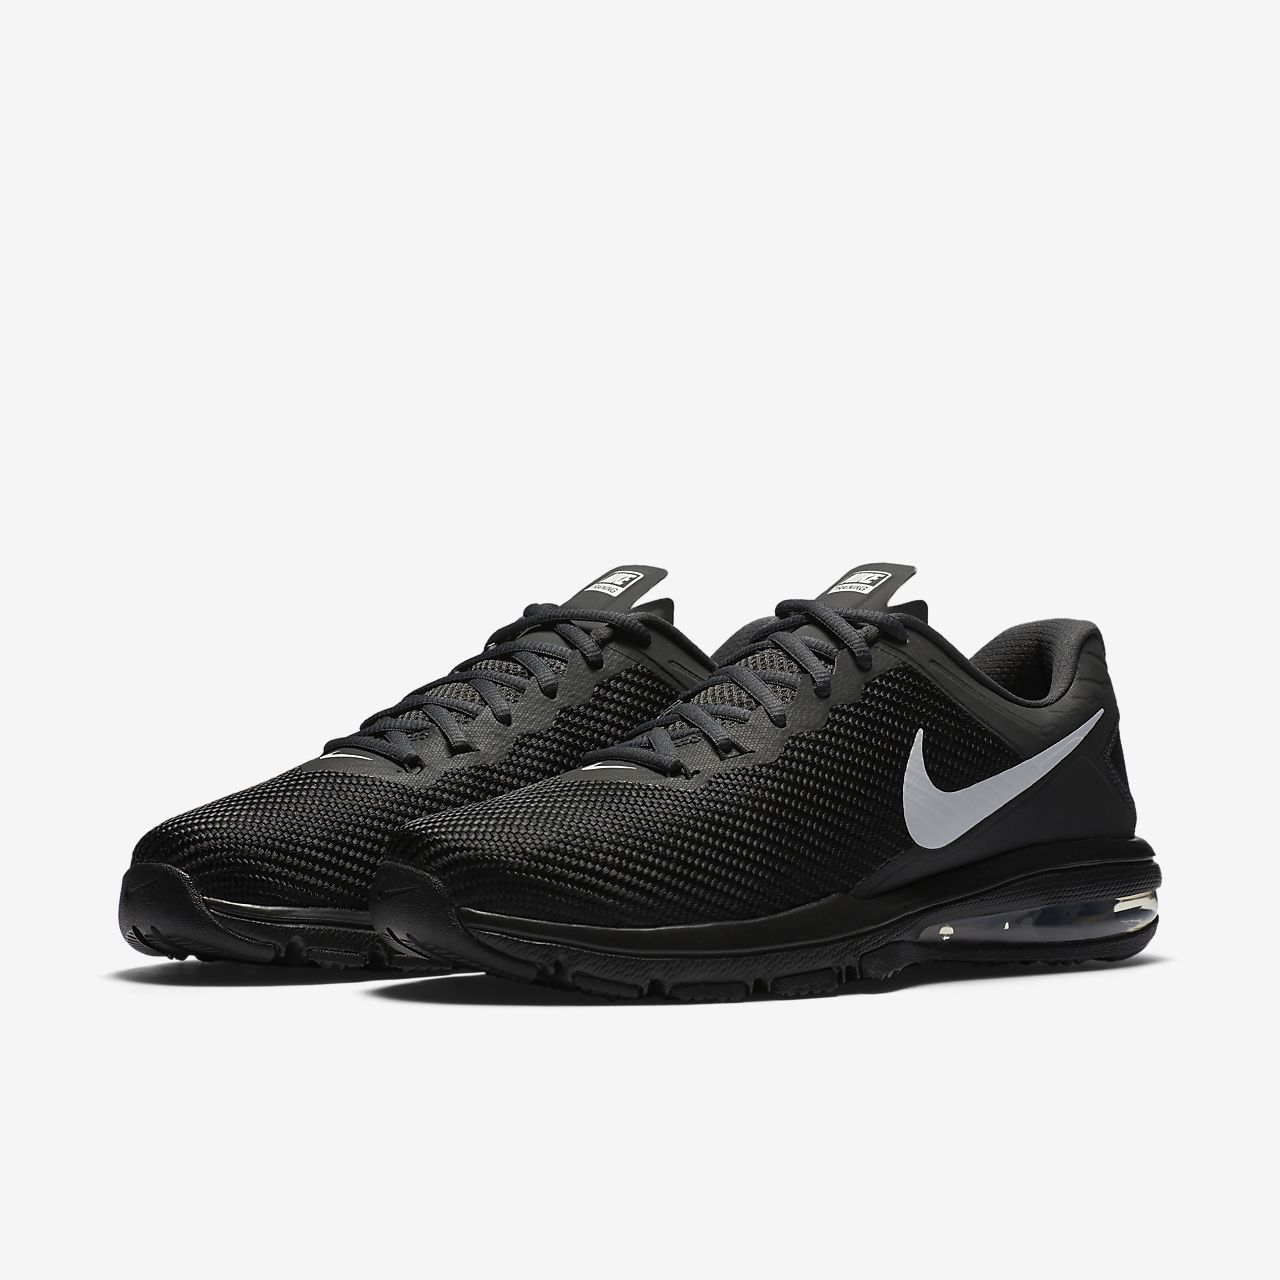 on sale f1b65 965a1 ... Chaussure de training Nike Air Max Full Ride TR 1.5 pour Homme